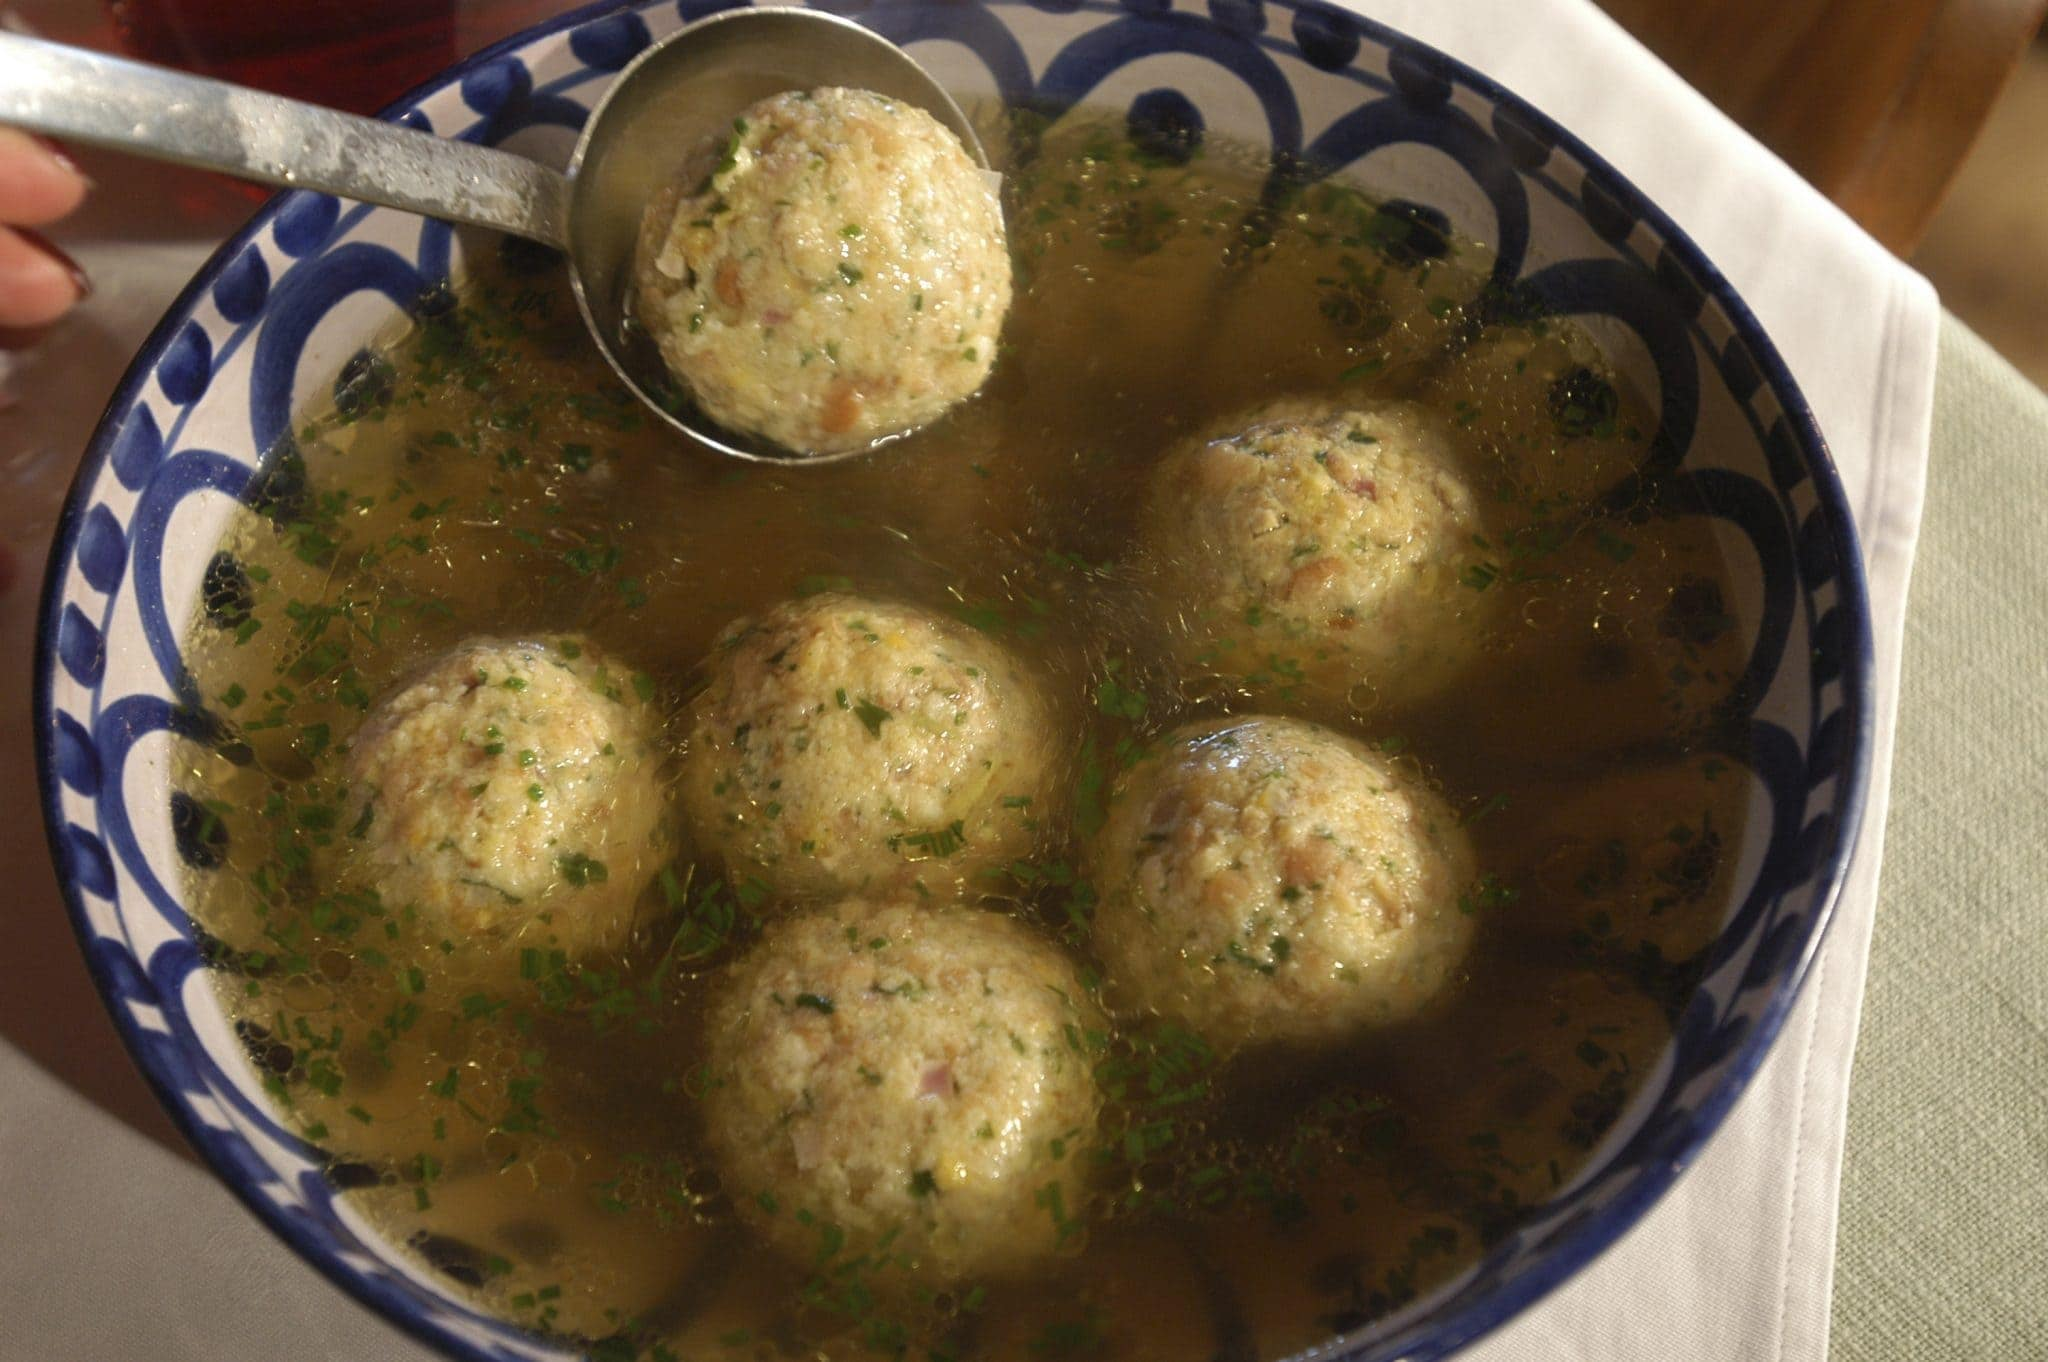 This soup is also among the most popular Italian main dishes.